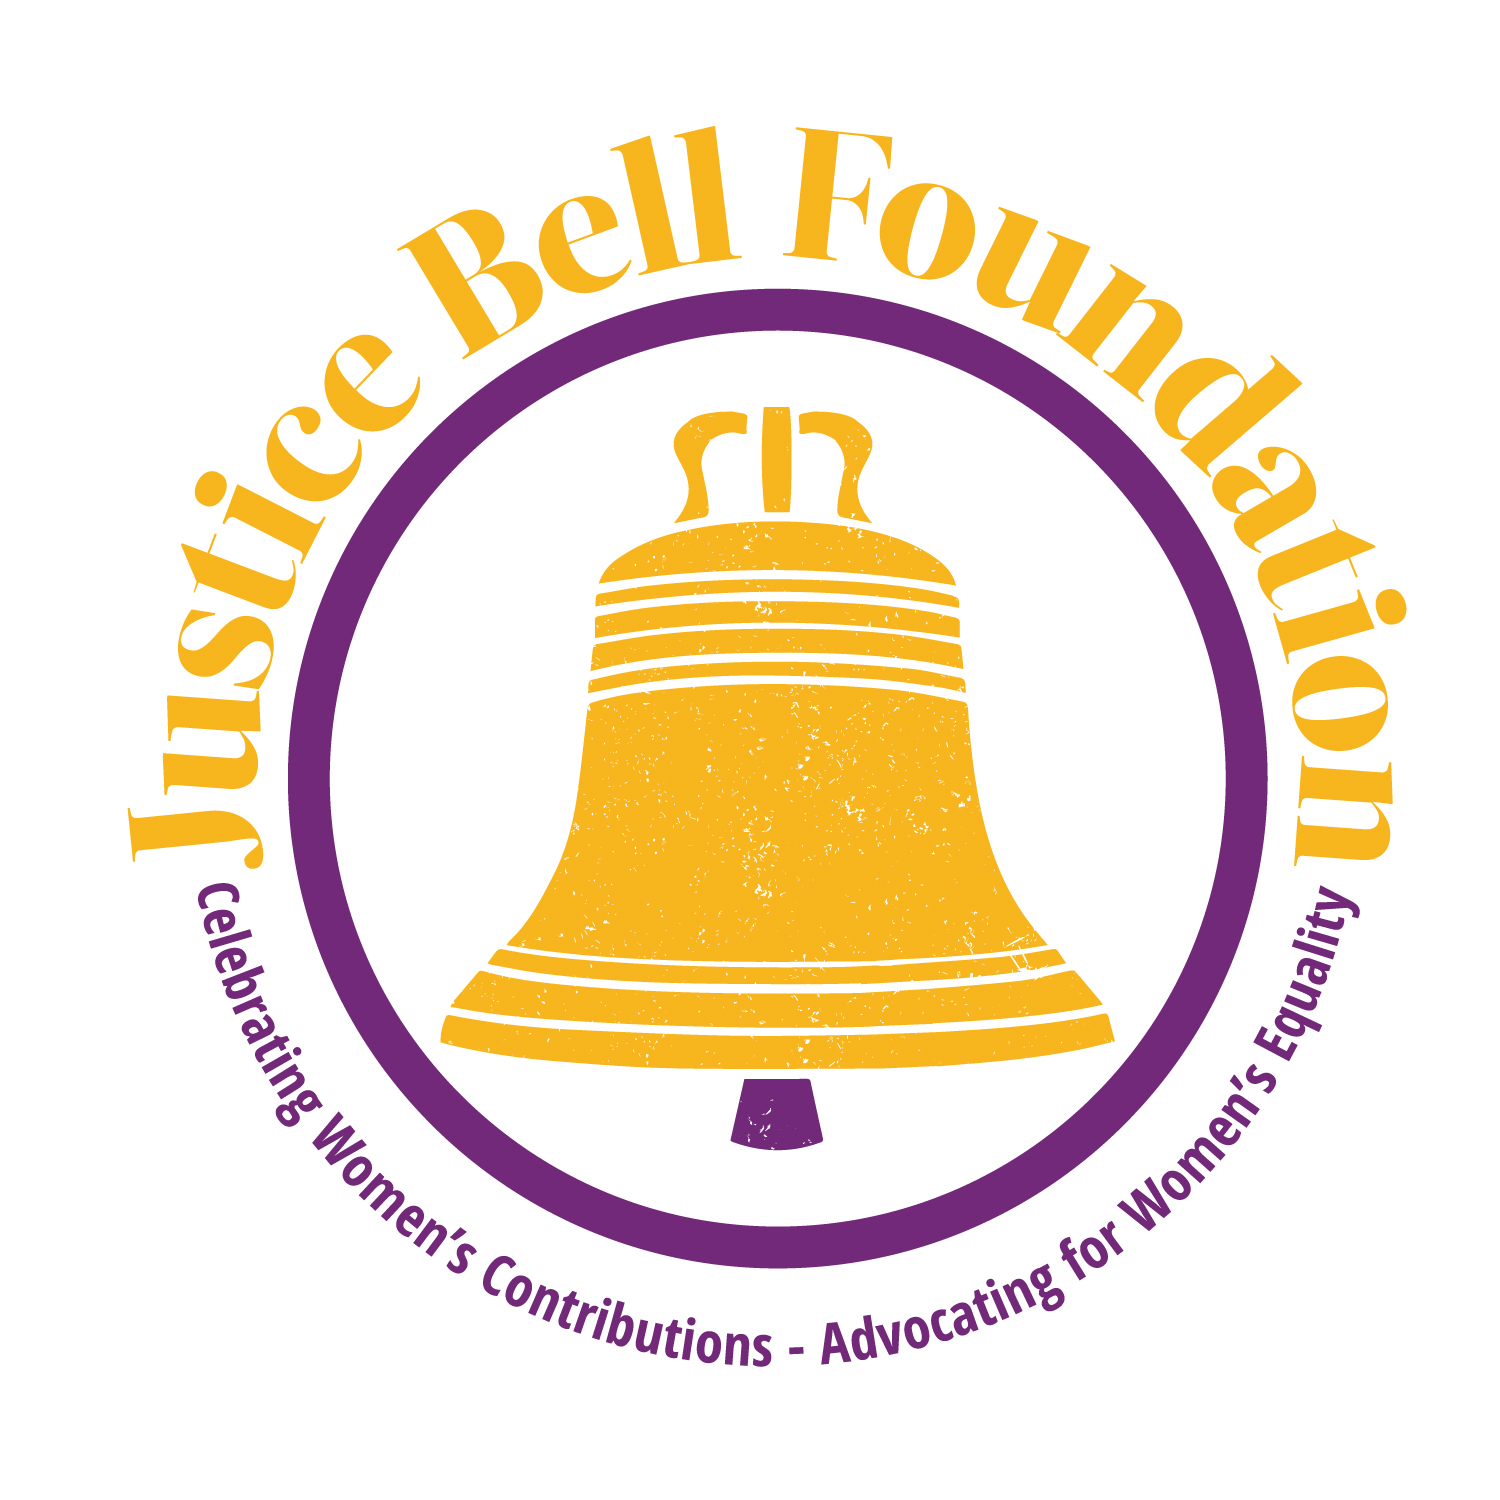 Justice Bell Foundation